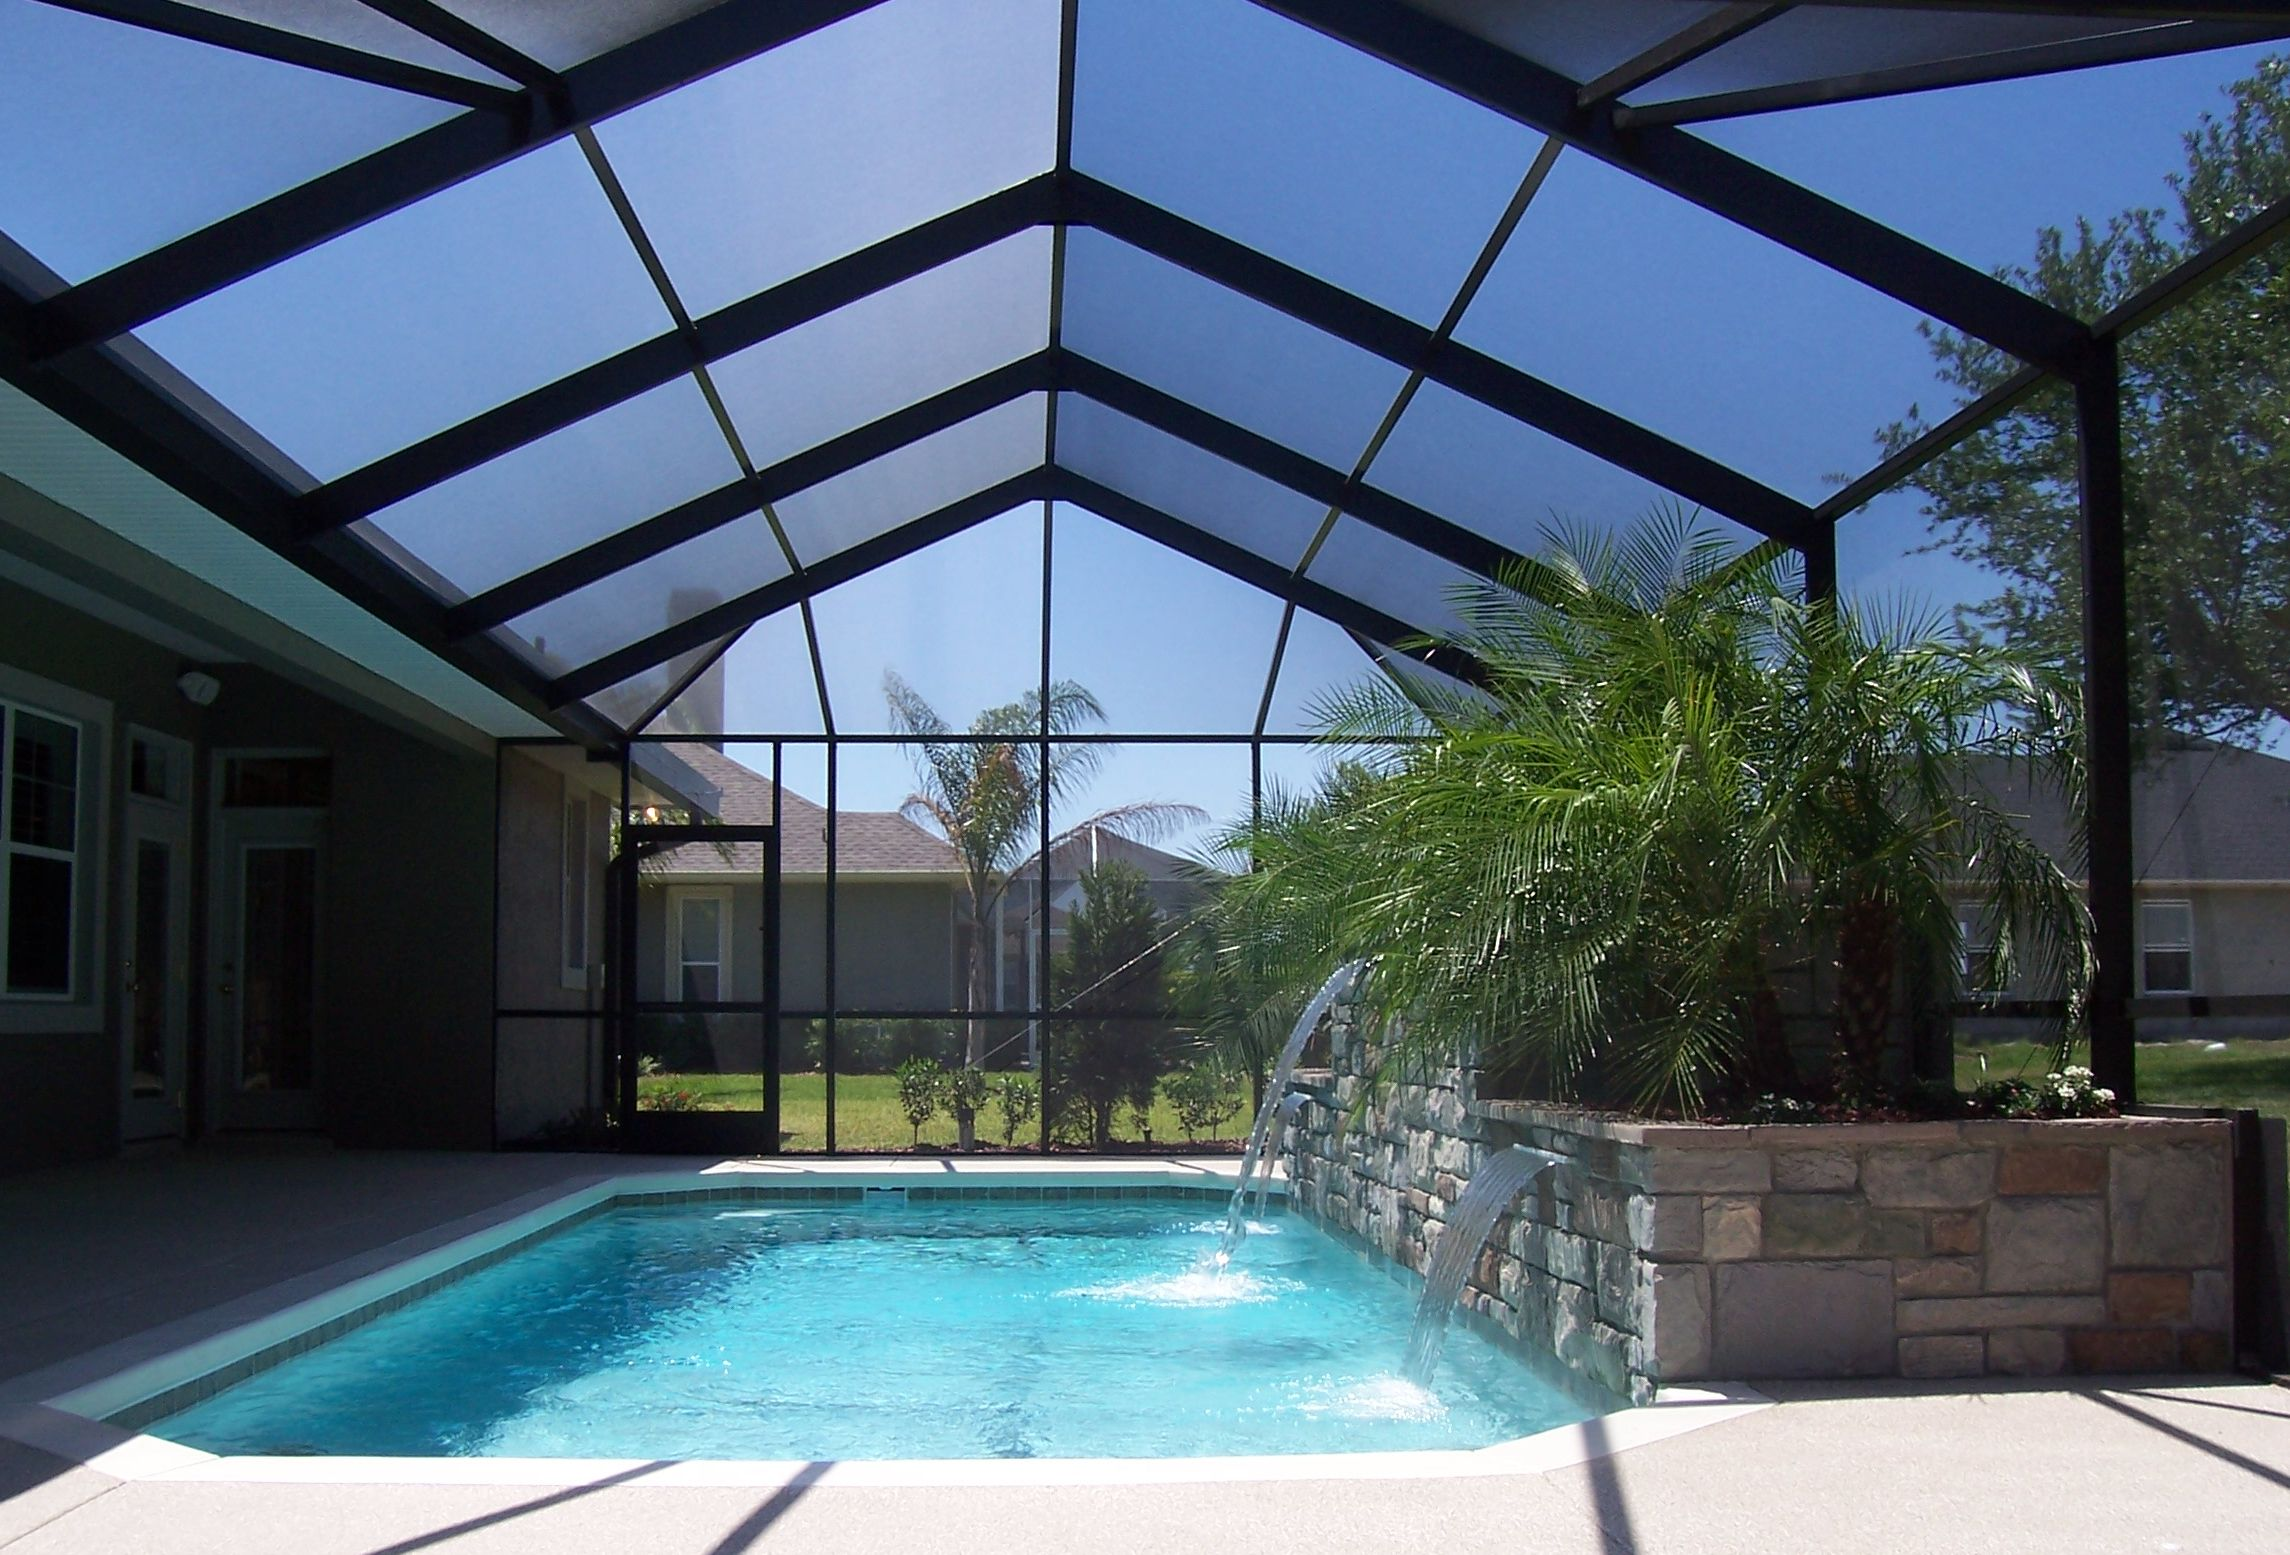 Winter haven lakeland pool enclosures pool screen for Inground pool enclosure prices